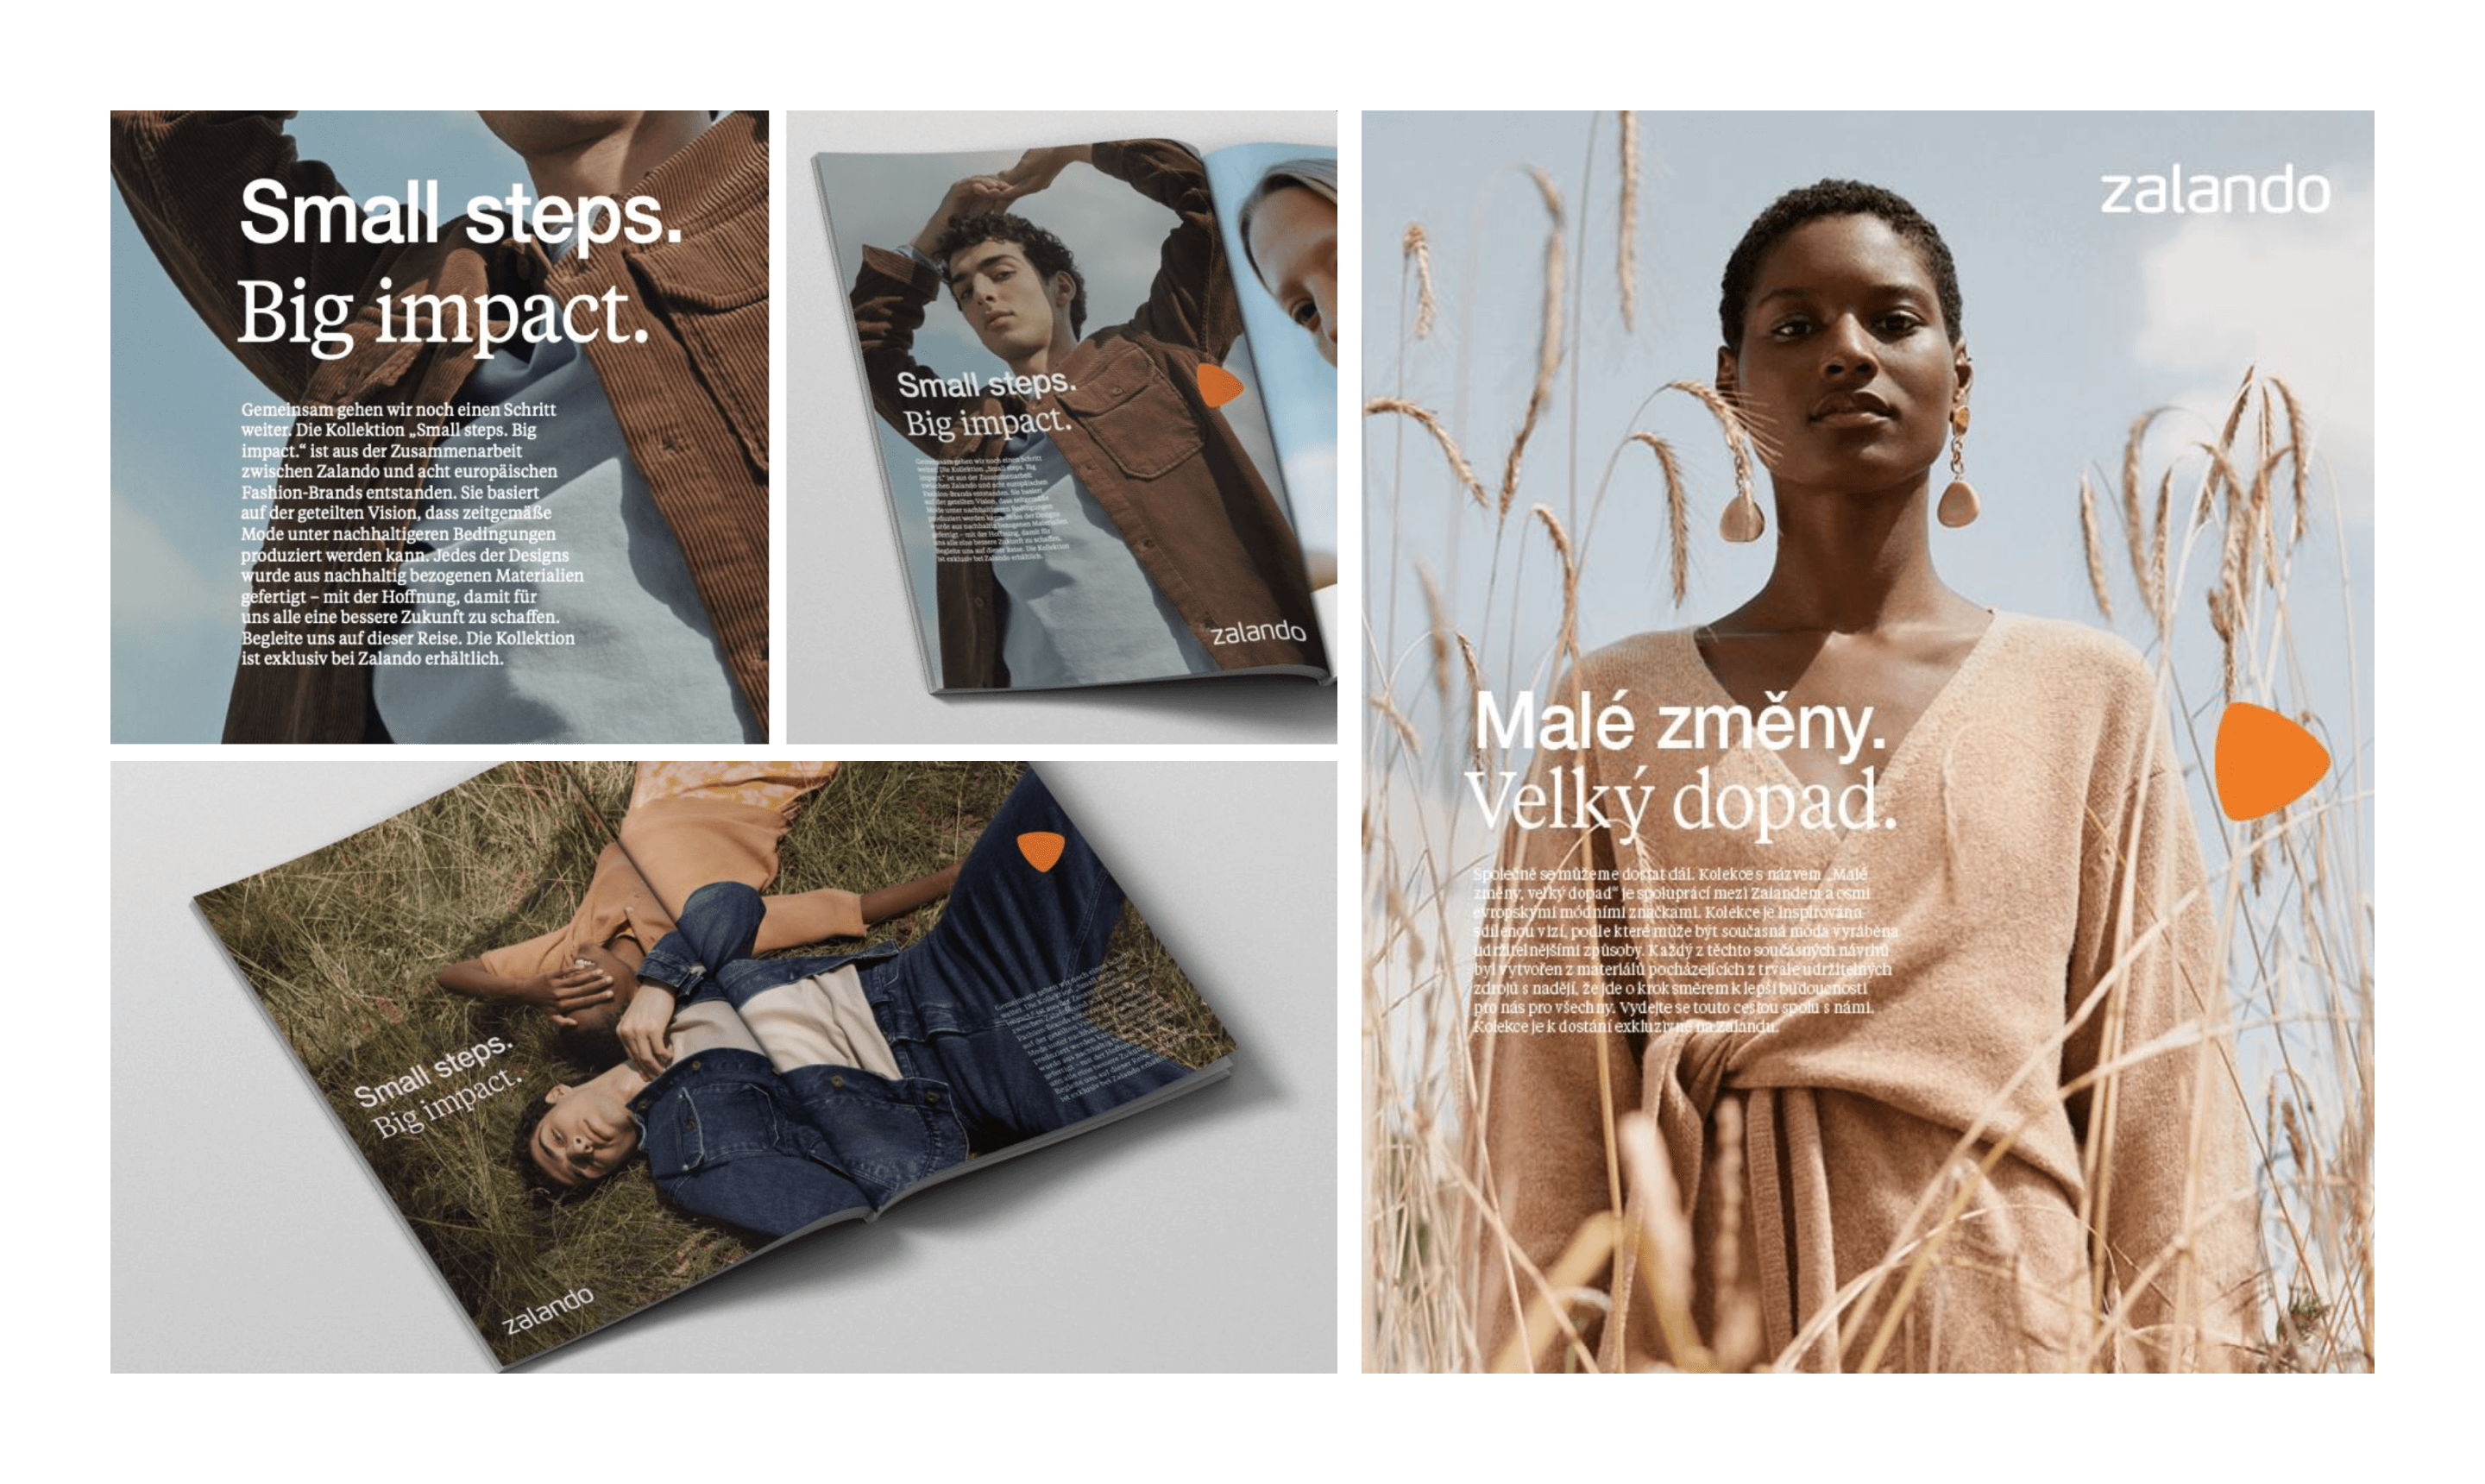 Application of the type pairing in a magazine spread. Design by Zalando's MS&C team